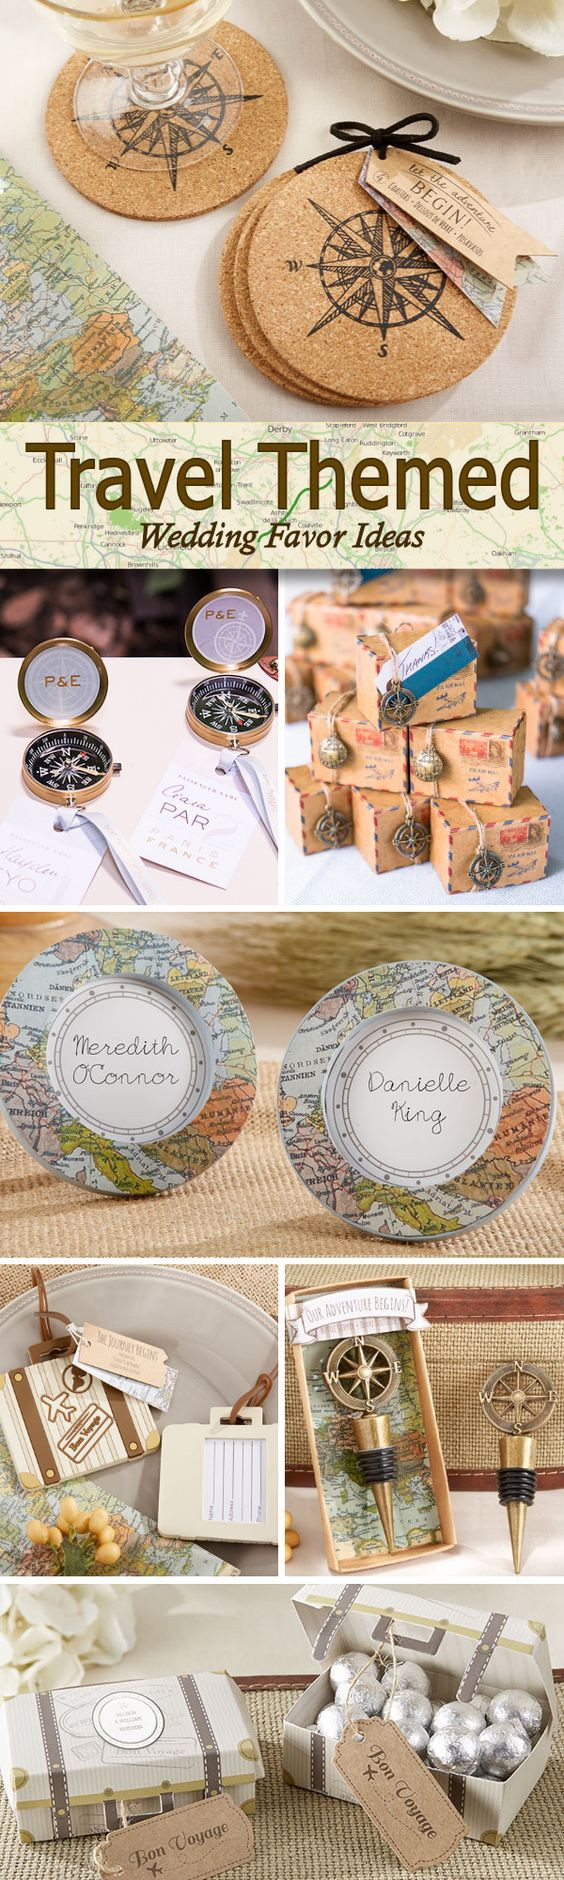 Travel Theme Wedding  The Travel Themed Wedding